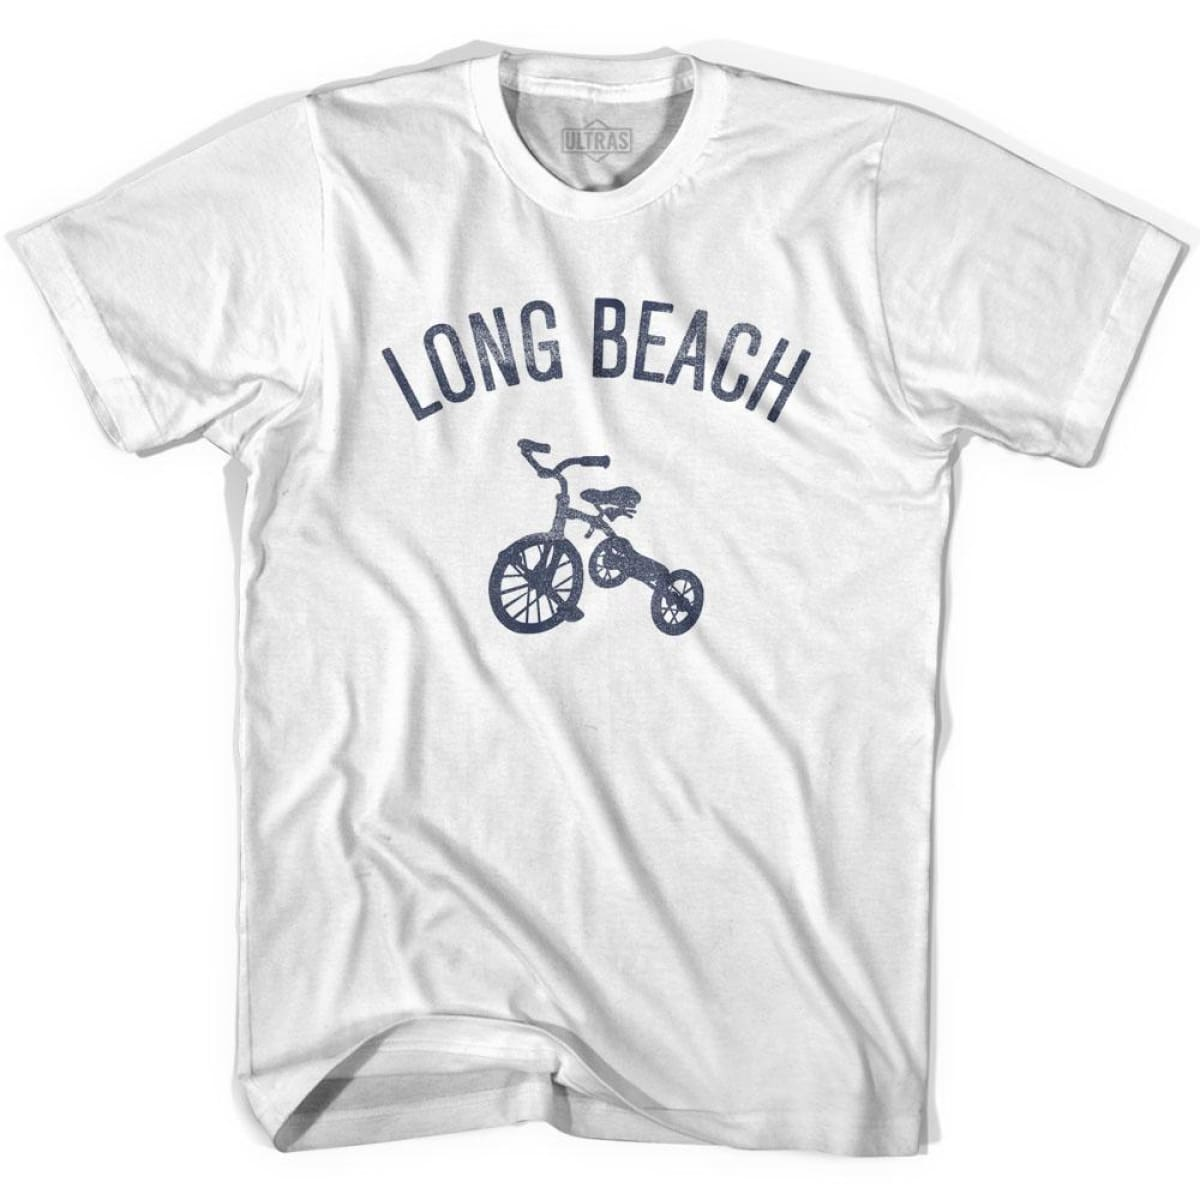 Long Beach City Tricycle Womens Cotton T-shirt - Tricycle City